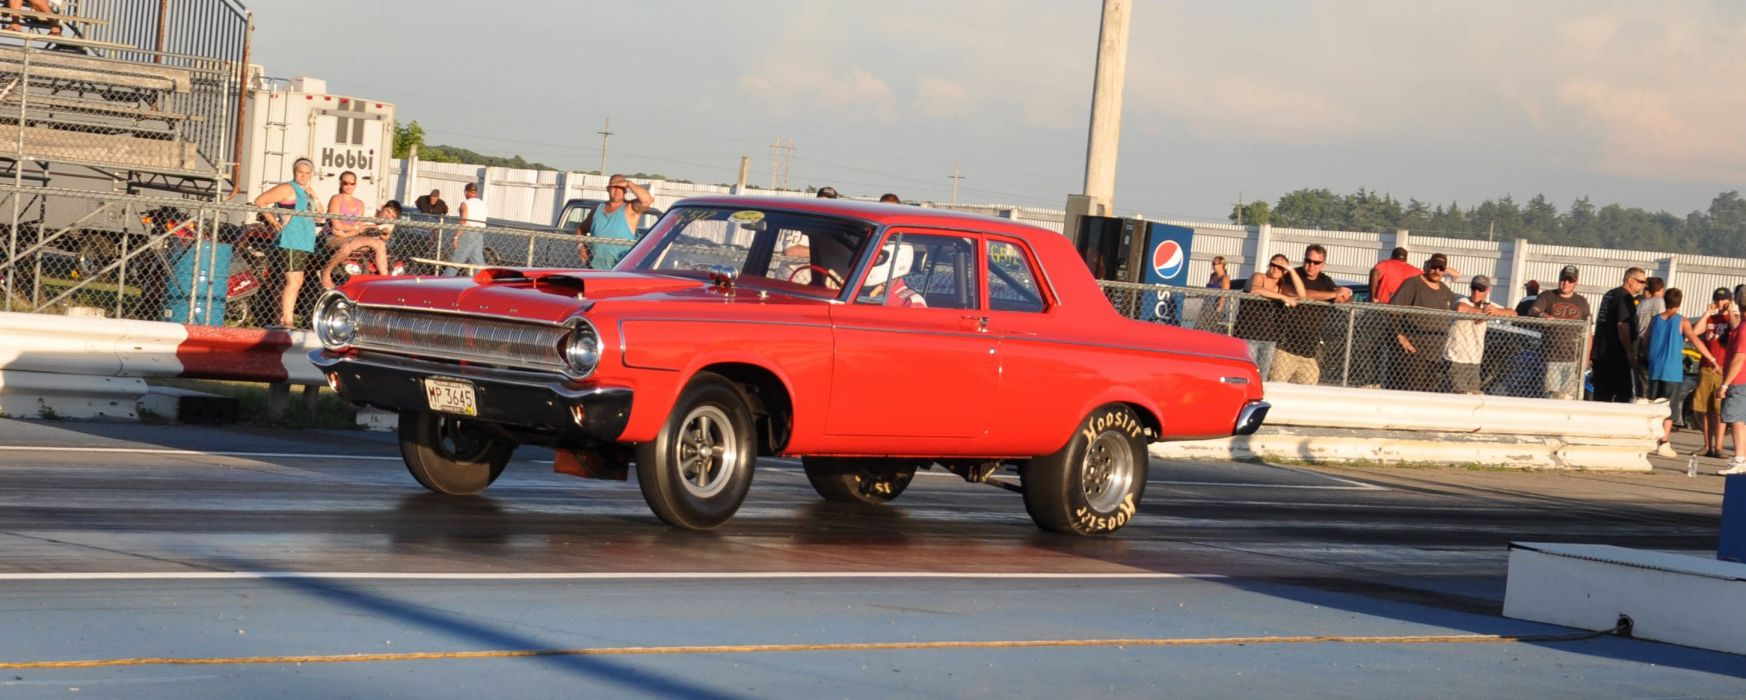 drag racing race hot rod rods dodge   g wallpaper